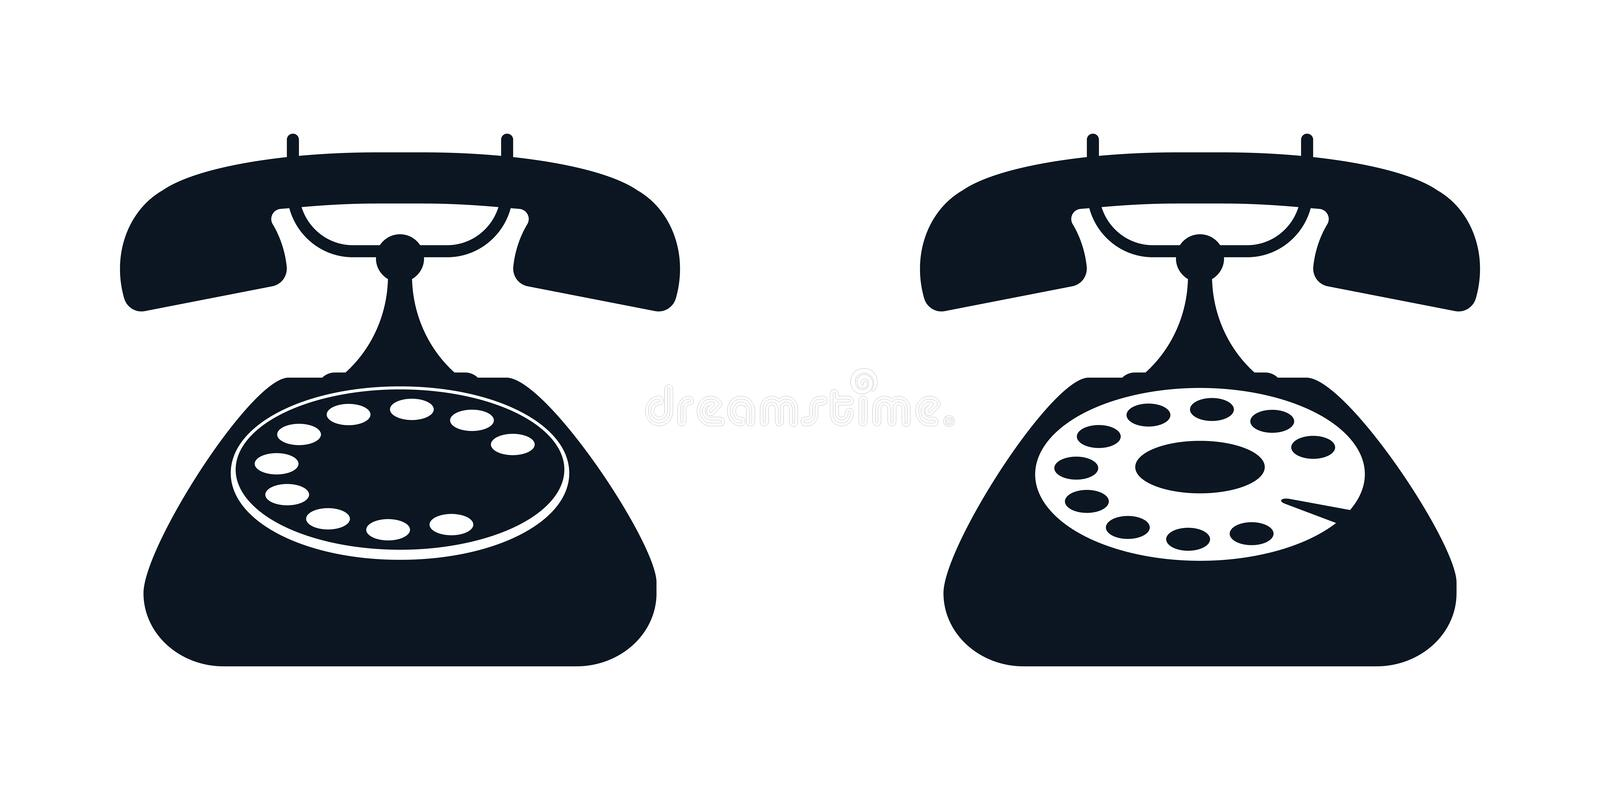 Home retro rotary phone, black icon on white background. Vector royalty free illustration